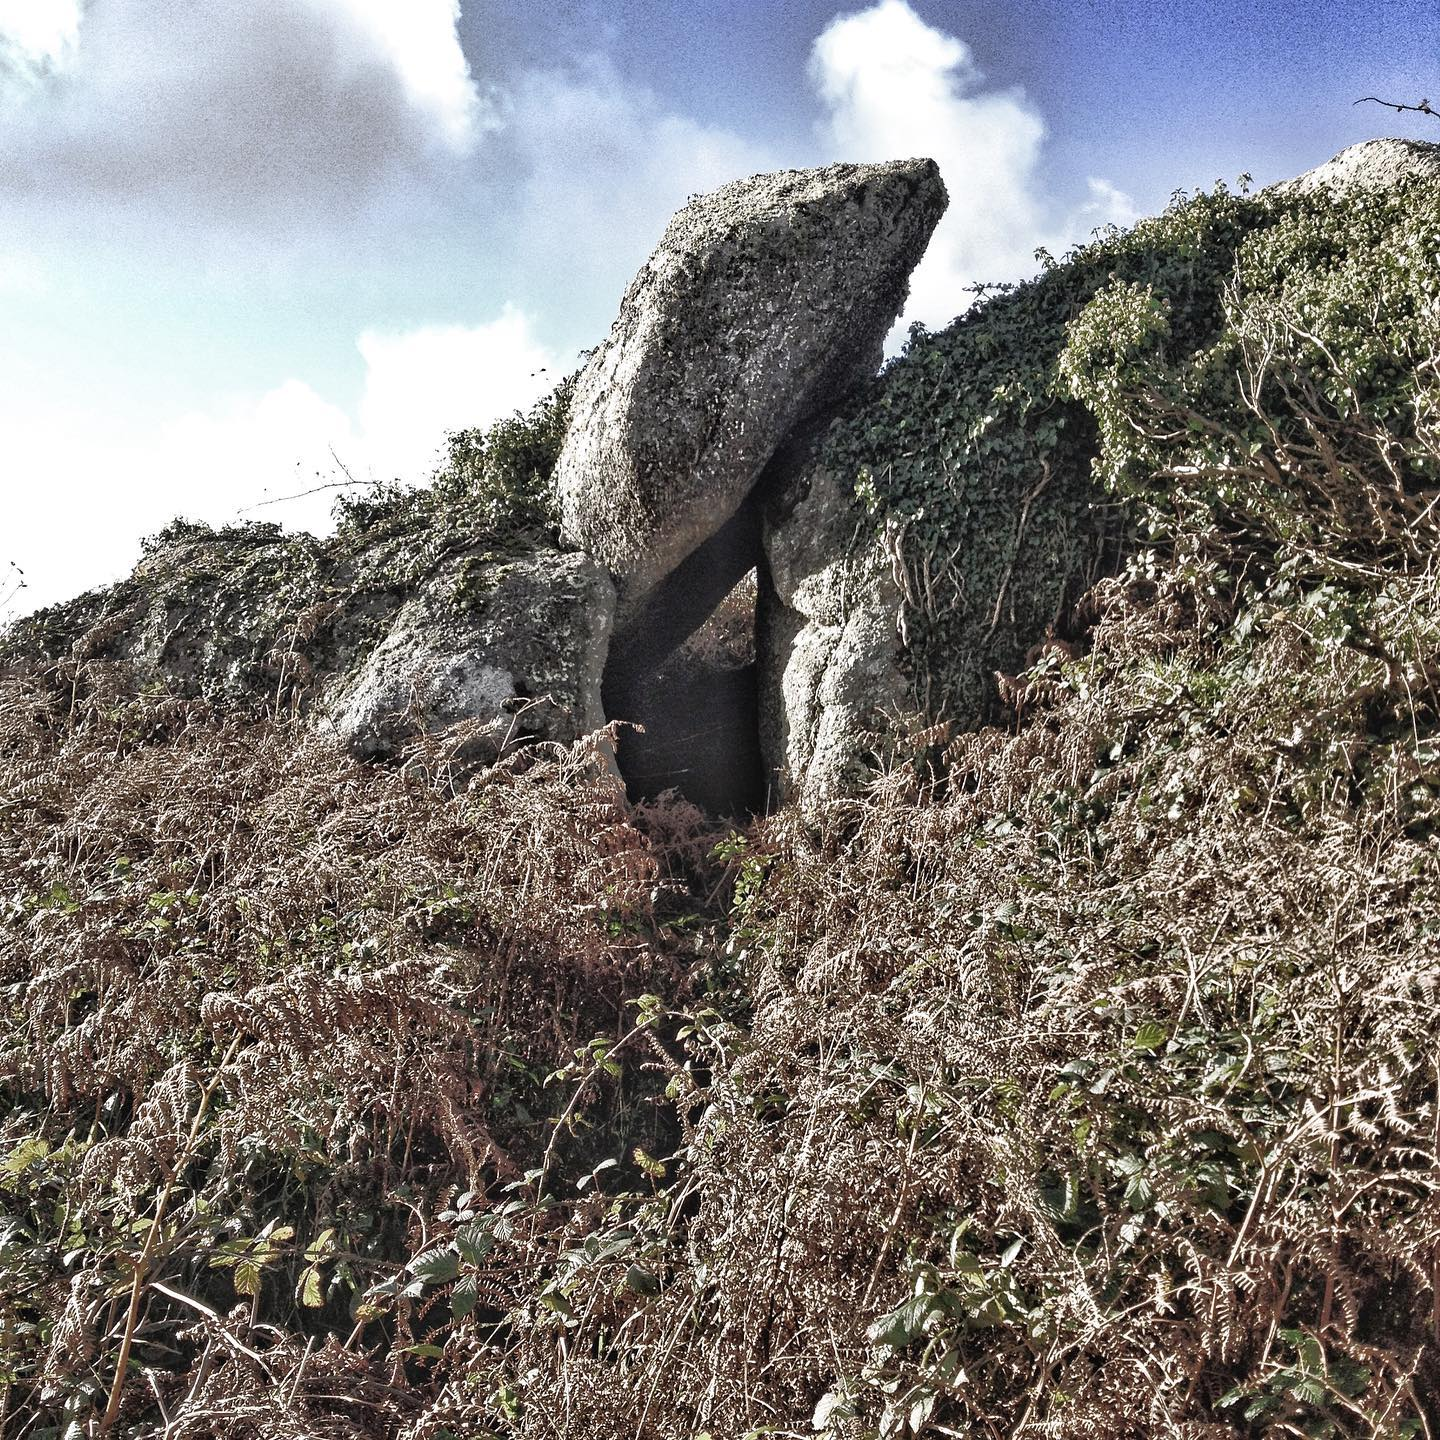 trevalgon hill revisited. west penwith.  the large torstone that forms the right hand side of this chamber like formation has a large rock basin on its upper surface. the upright stone forms the roof to the chamber that is large enough to crouch within it; a natural archetype for the quoits that populate the area perhaps... #trvalgonhill, #westpenwith, #prehistoricarchitecture, #monuments, #cave, #naturalrockformation, #monumentsinthemaking, #ancienthistory, #rockbasin, #solutionsbasin, #rockchamber,#montagecity.com